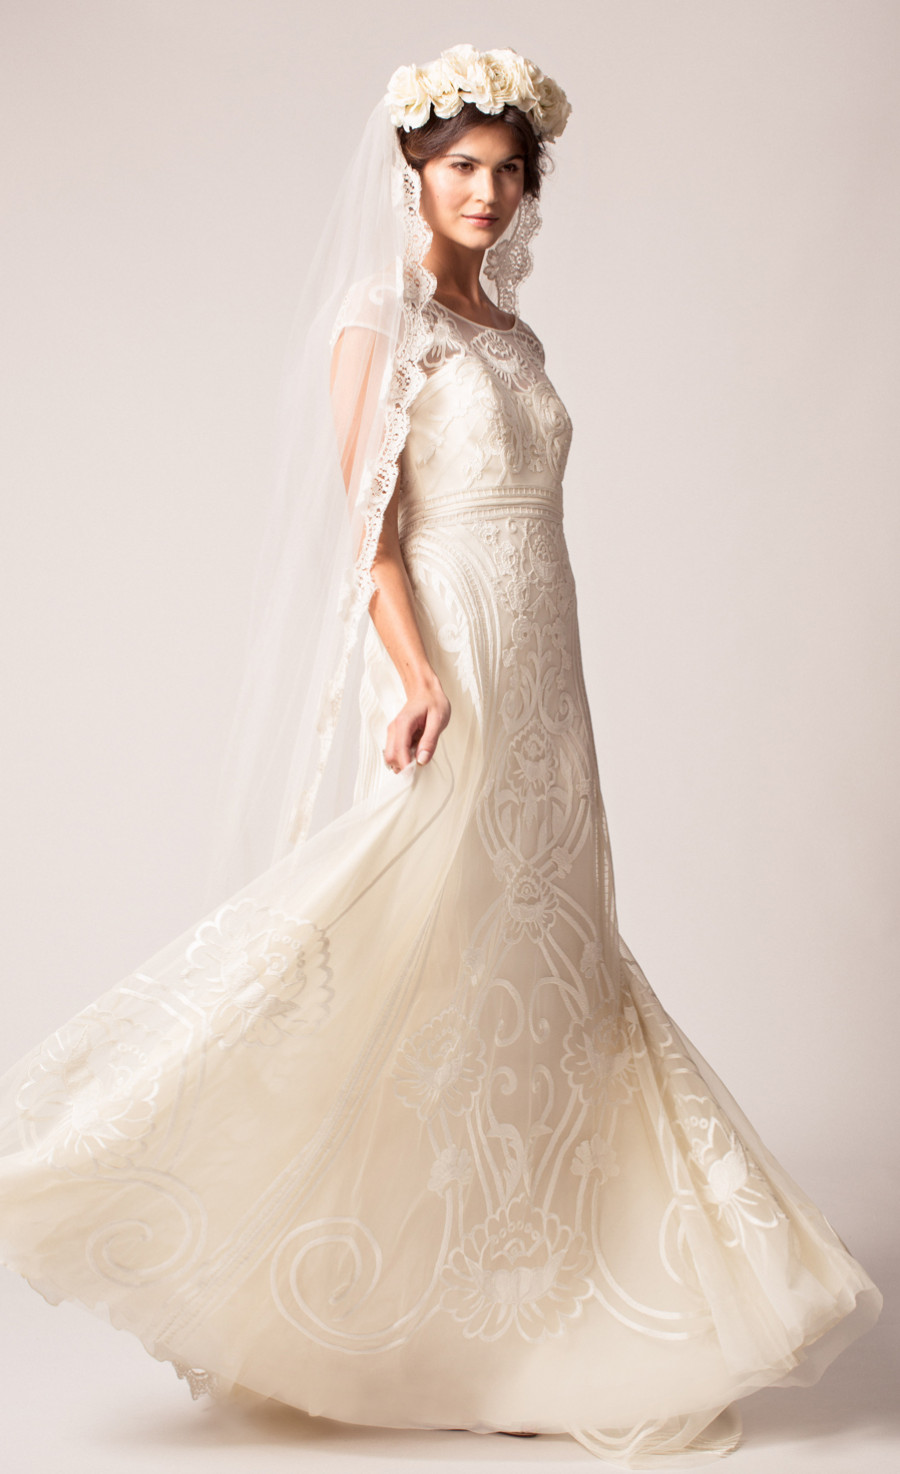 012_chrys-dress_long-honour-veil.jpg